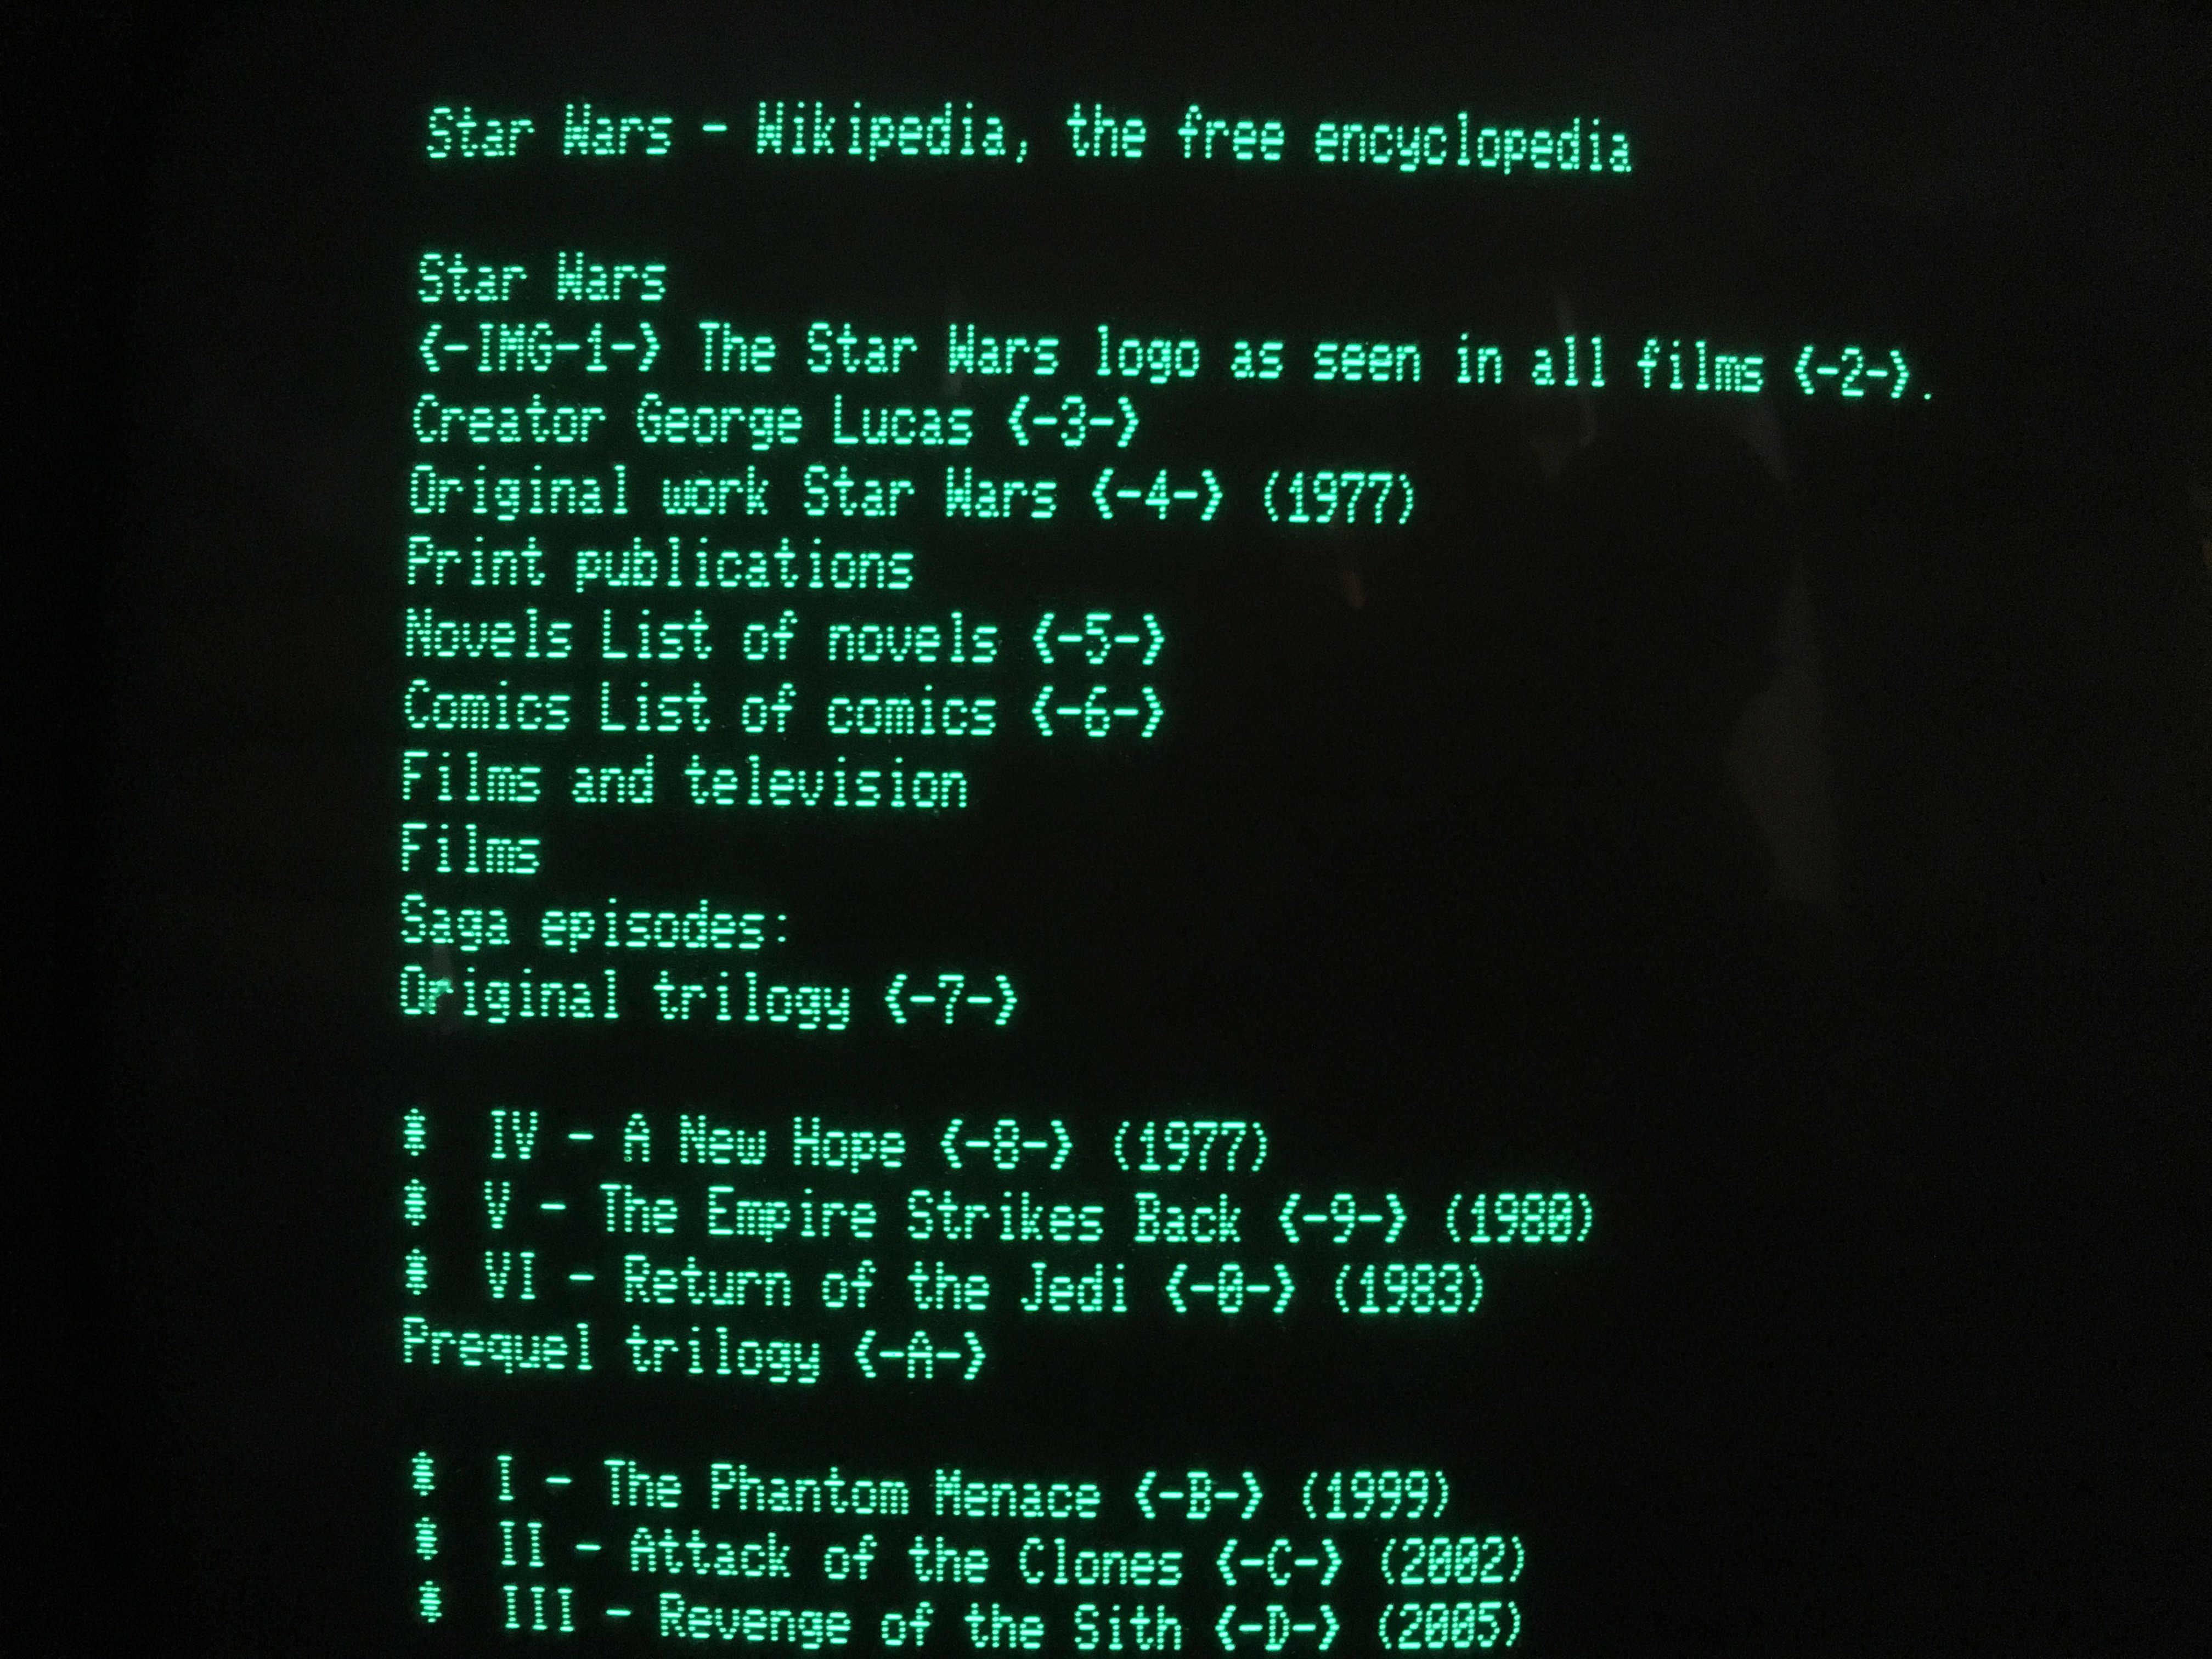 80 column Wikipedia entry for Star Wars as rendered by TRSWiki on a Model 4 with the M3SE running LS-DOS 6